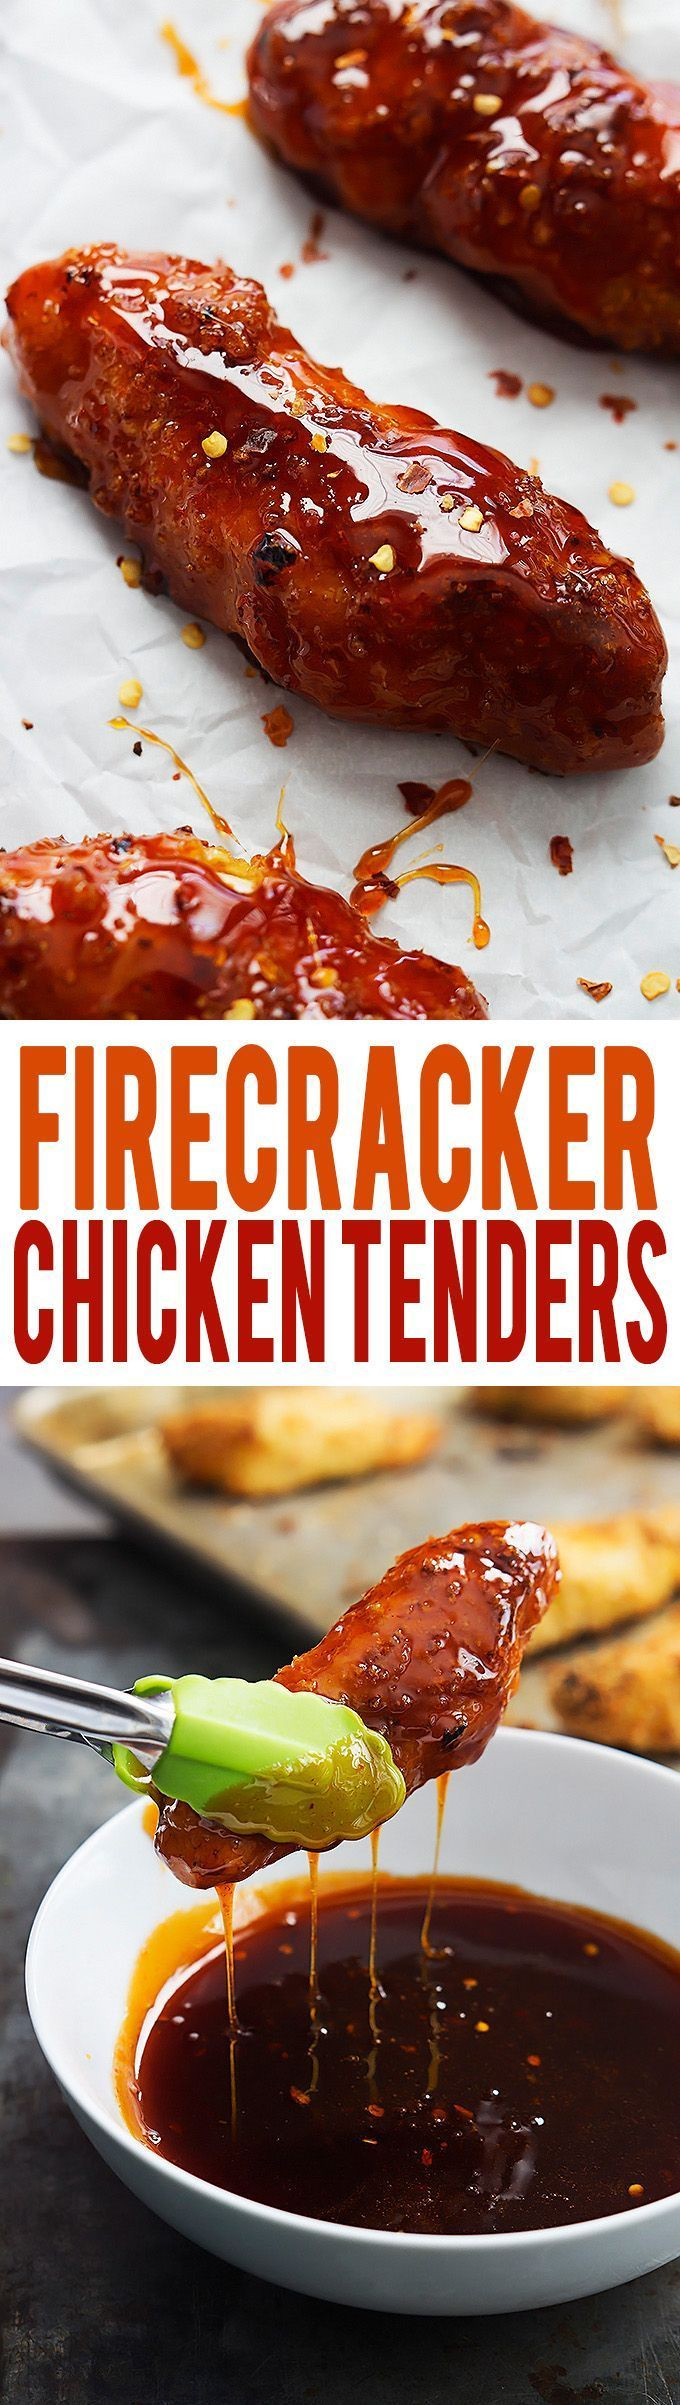 Firecracker Chicken Tenders - baked, not fried, and tossed in a sweet and spicy sauce!   Creme de la Crumb